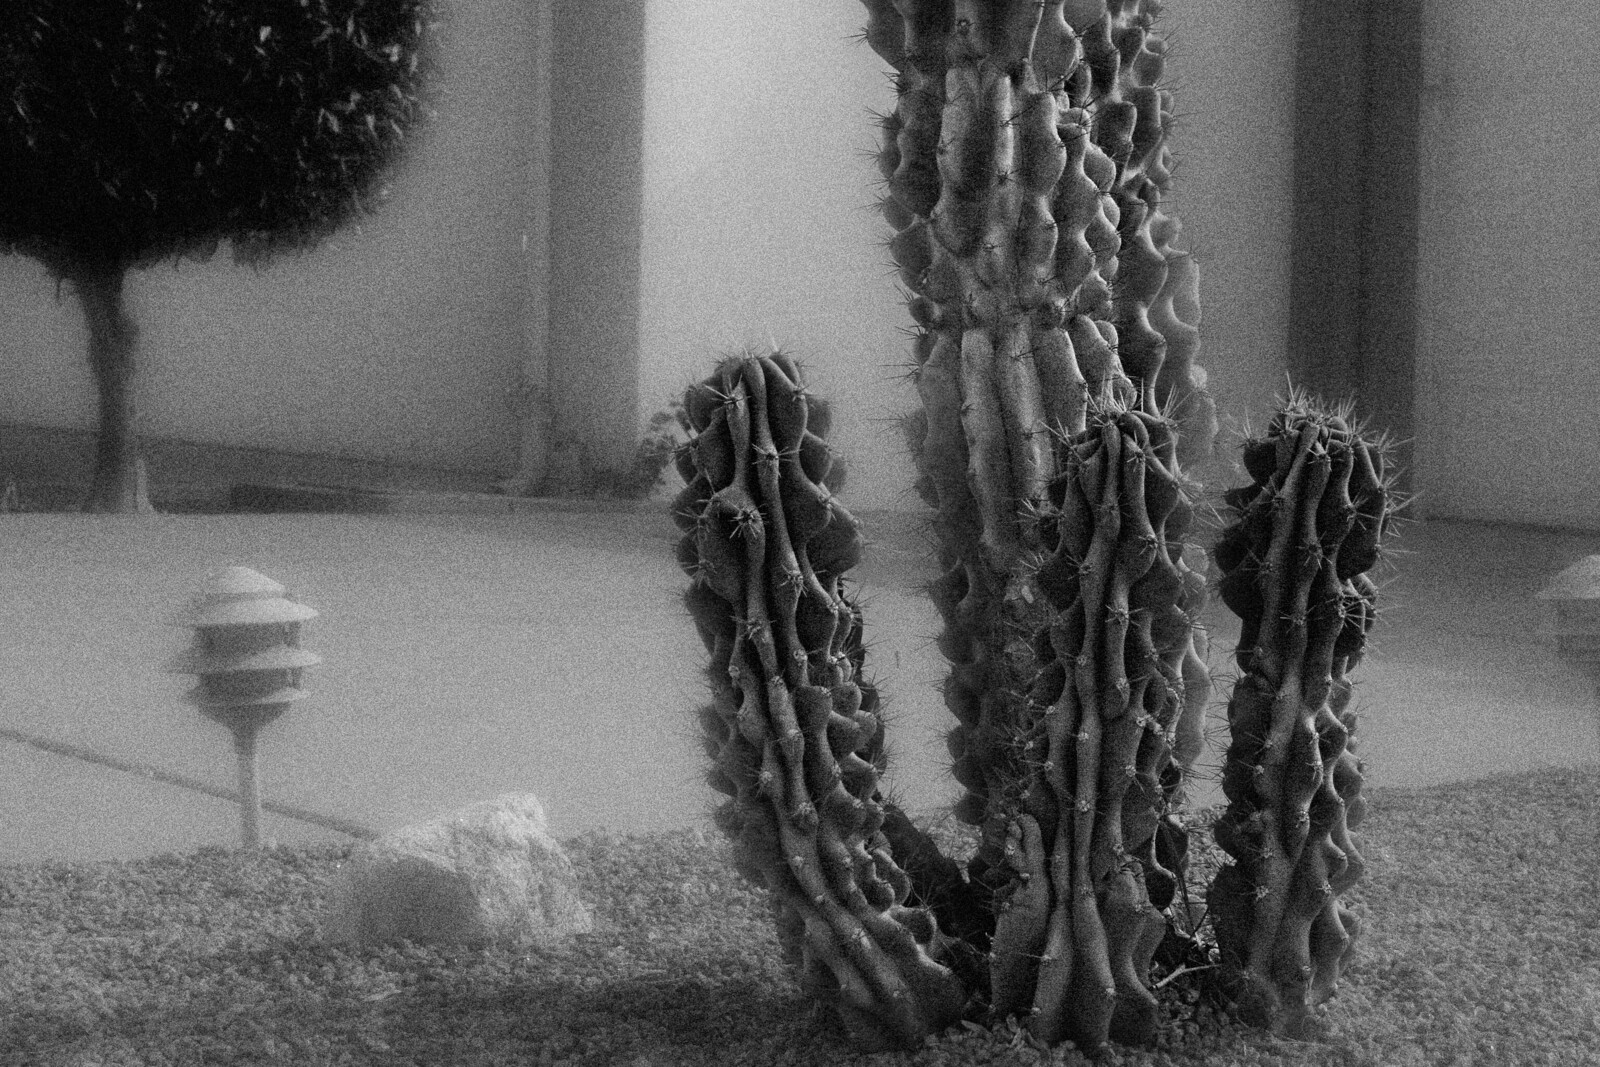 Portrait of Landscape Cactus and Night Light in B&W, 2015